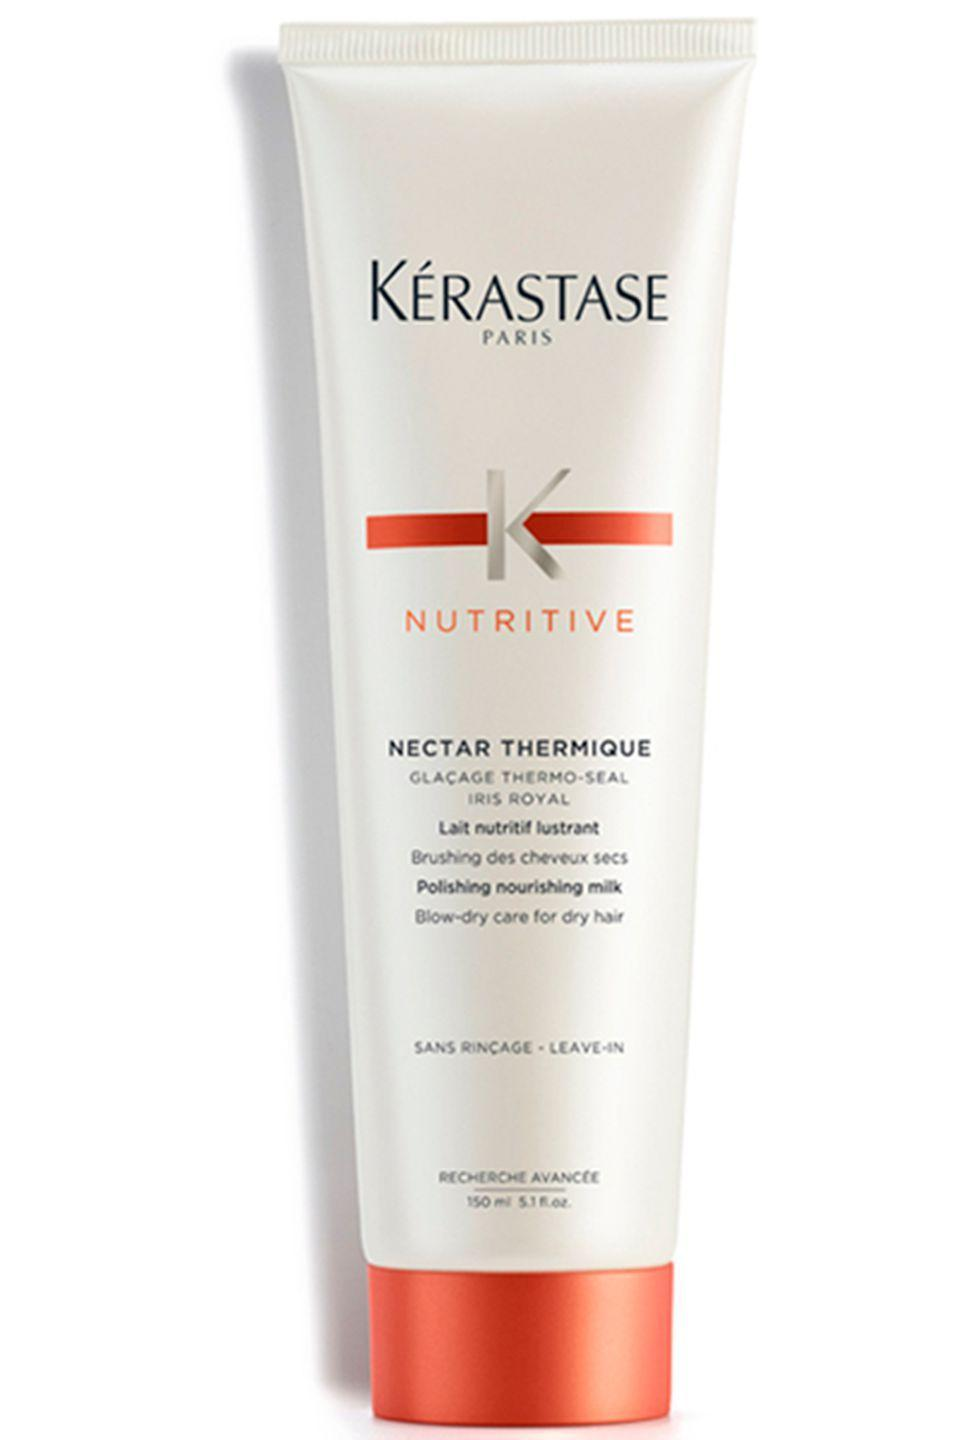 "<p><strong>Best for: Dry to <em>very</em> dry hair</strong></p><p>Kérastase Nutritive Nectar Thermique has been specifically designed for Sahara-dry locks. The moisturising formula works like a big drink of water for brittle lengths. Run a dollop through the mid-lengths to ends and it'll keep those frustrating split ends from settling in. </p><p><strong>Price</strong>: £17.85</p><p><a class=""link rapid-noclick-resp"" href=""https://www.lookfantastic.com/kerastase-nutritive-nectar-thermique-150ml/11258176.html"" rel=""nofollow noopener"" target=""_blank"" data-ylk=""slk:buy now"">buy now</a><br></p>"